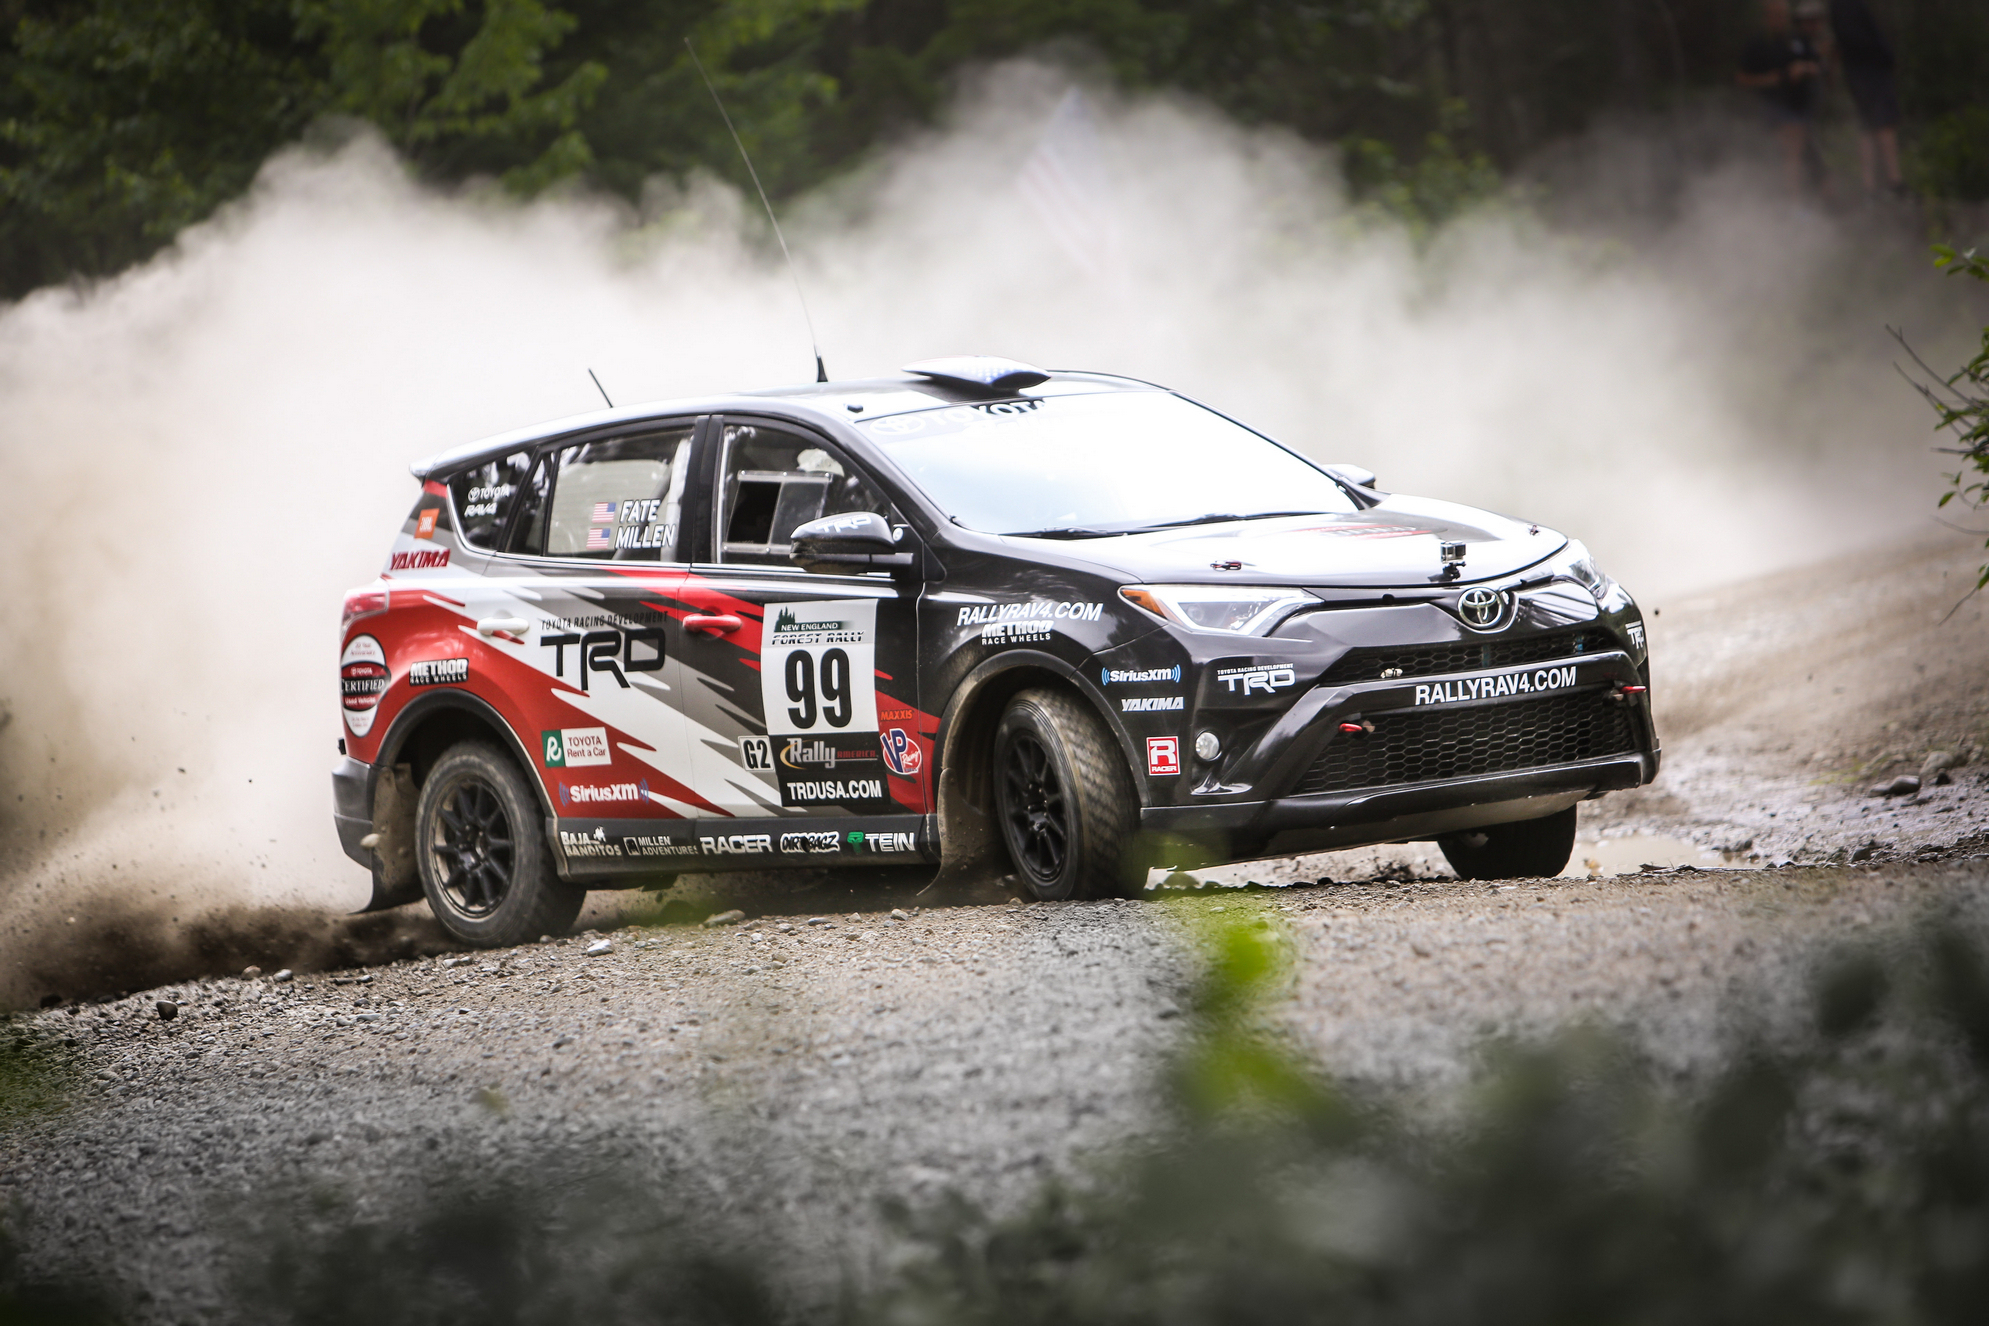 Rally Rav4 Heads To Minnesota For Ojibwe Forests Rally